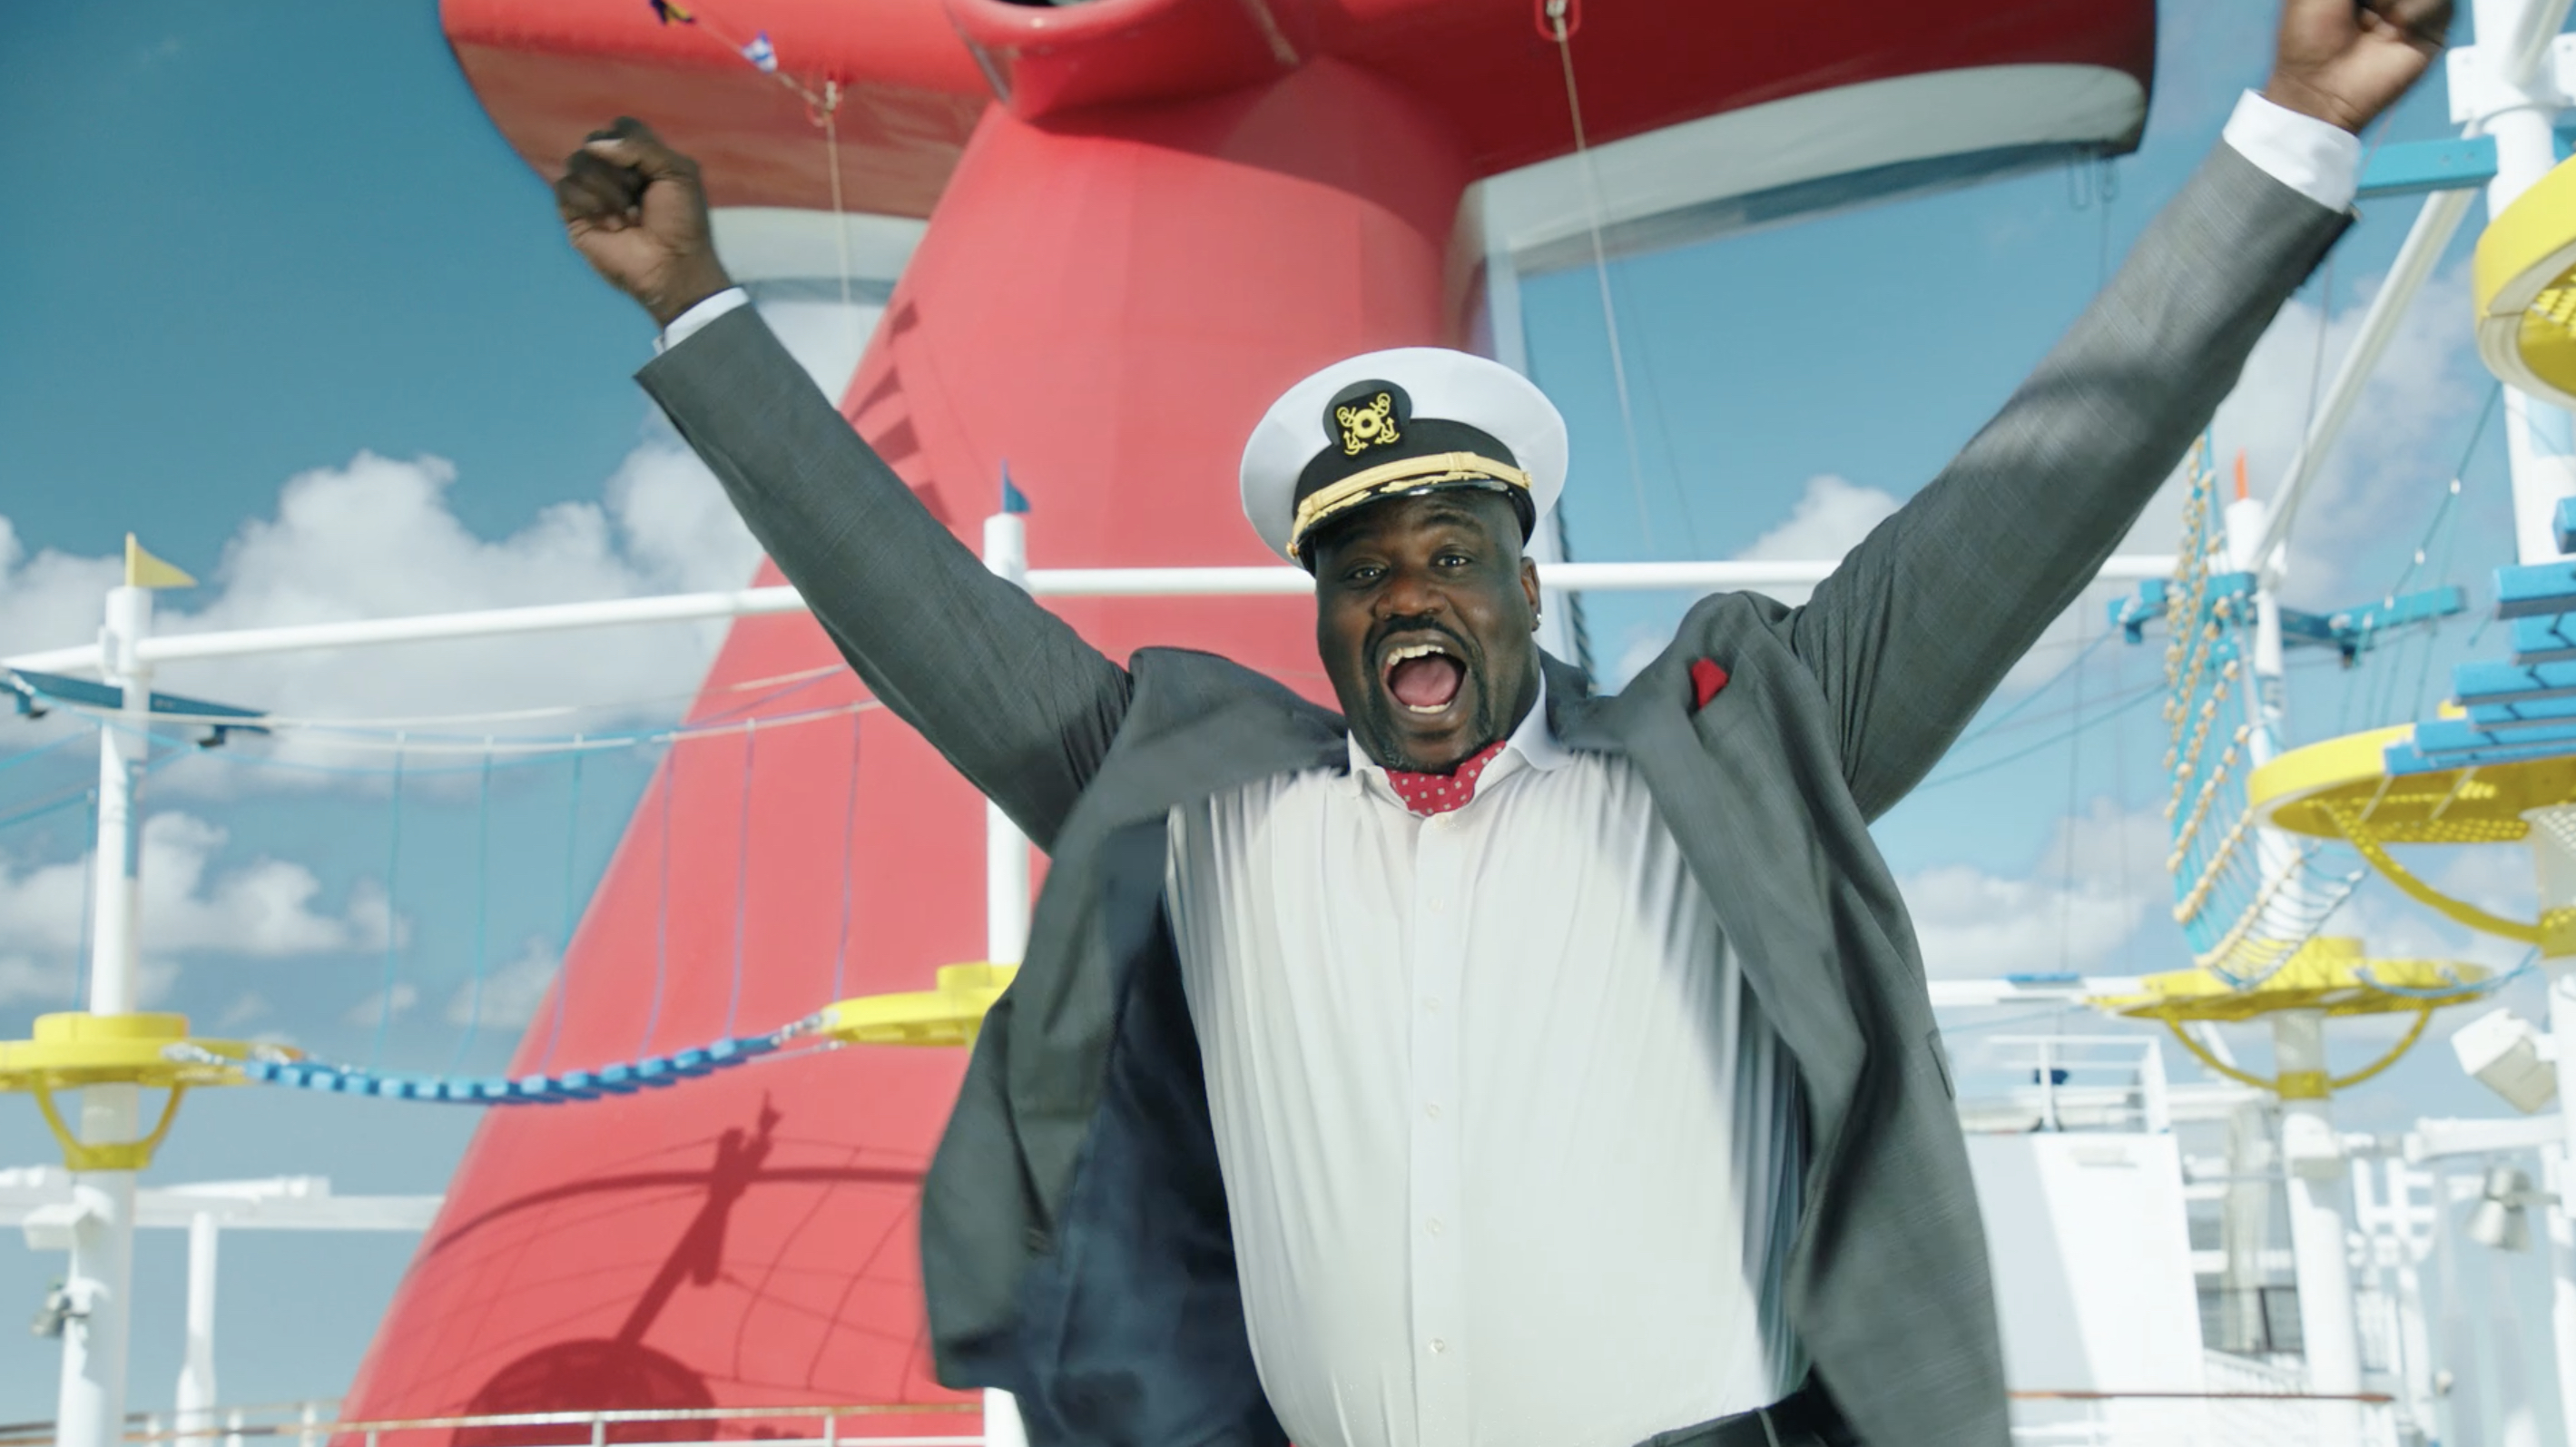 Shaq new CFO Chief Fun Officer at Carnival Cruise Line